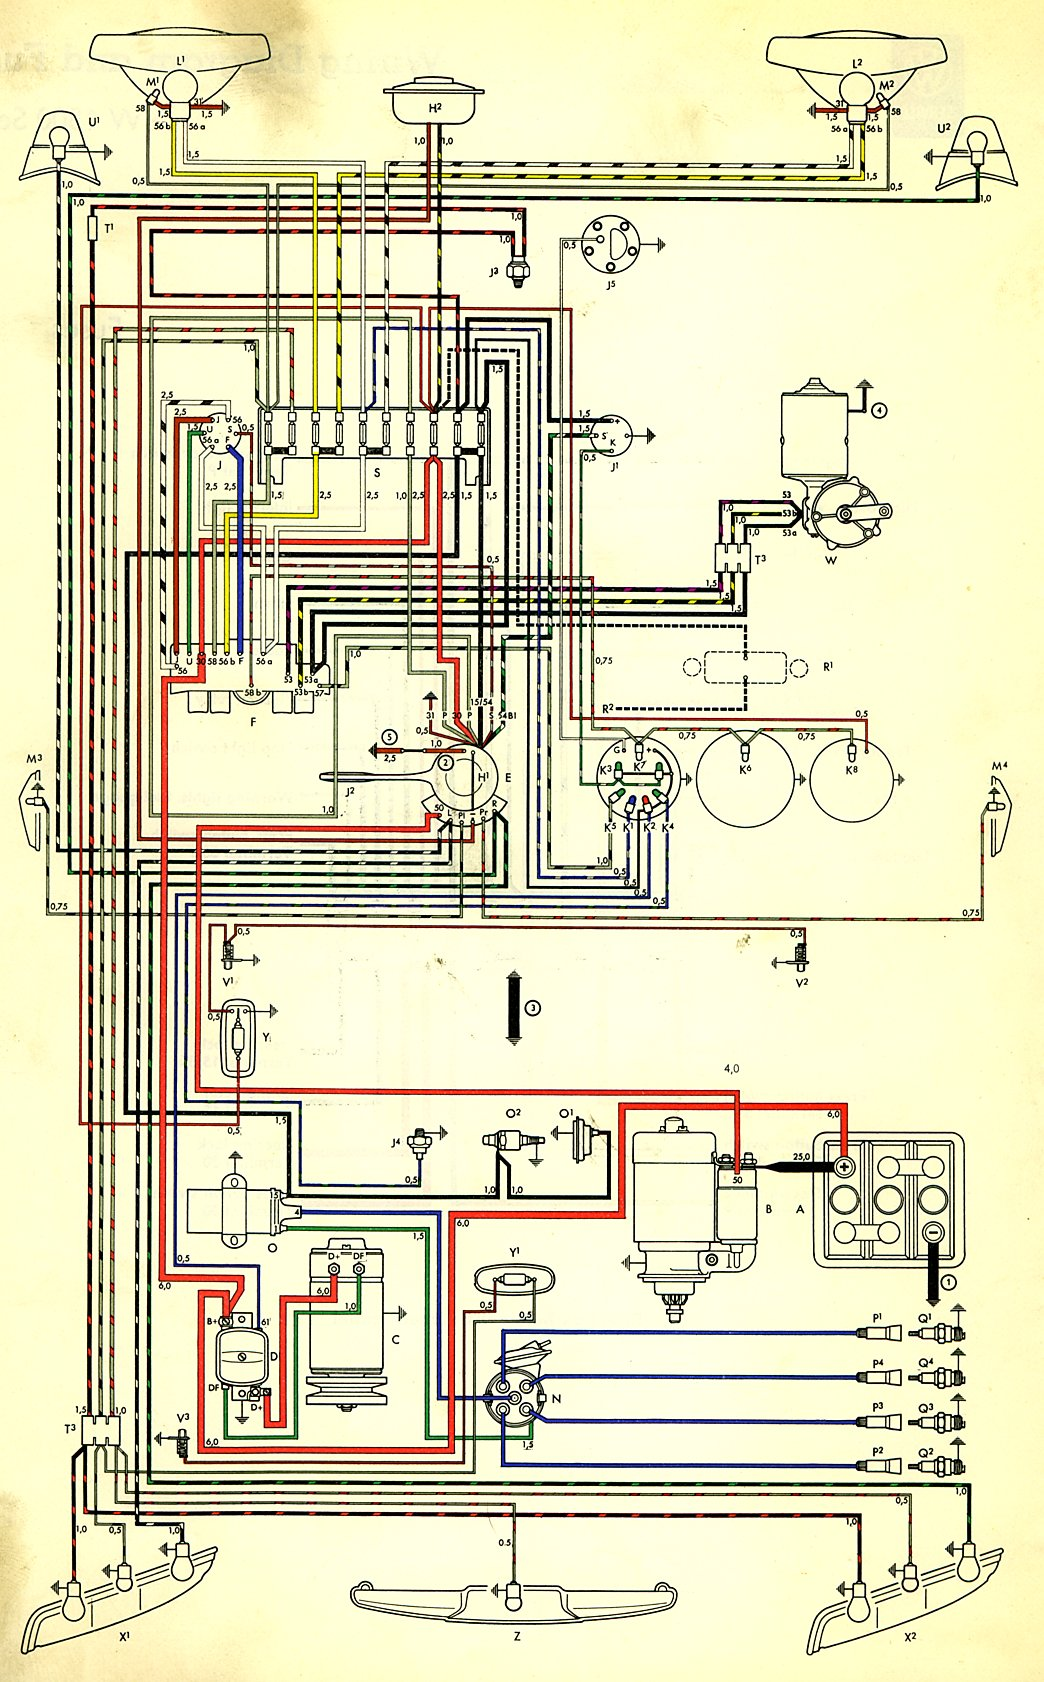 Type 3 Wiring Diagrams Diagram In Addition As Well 1979 Honda